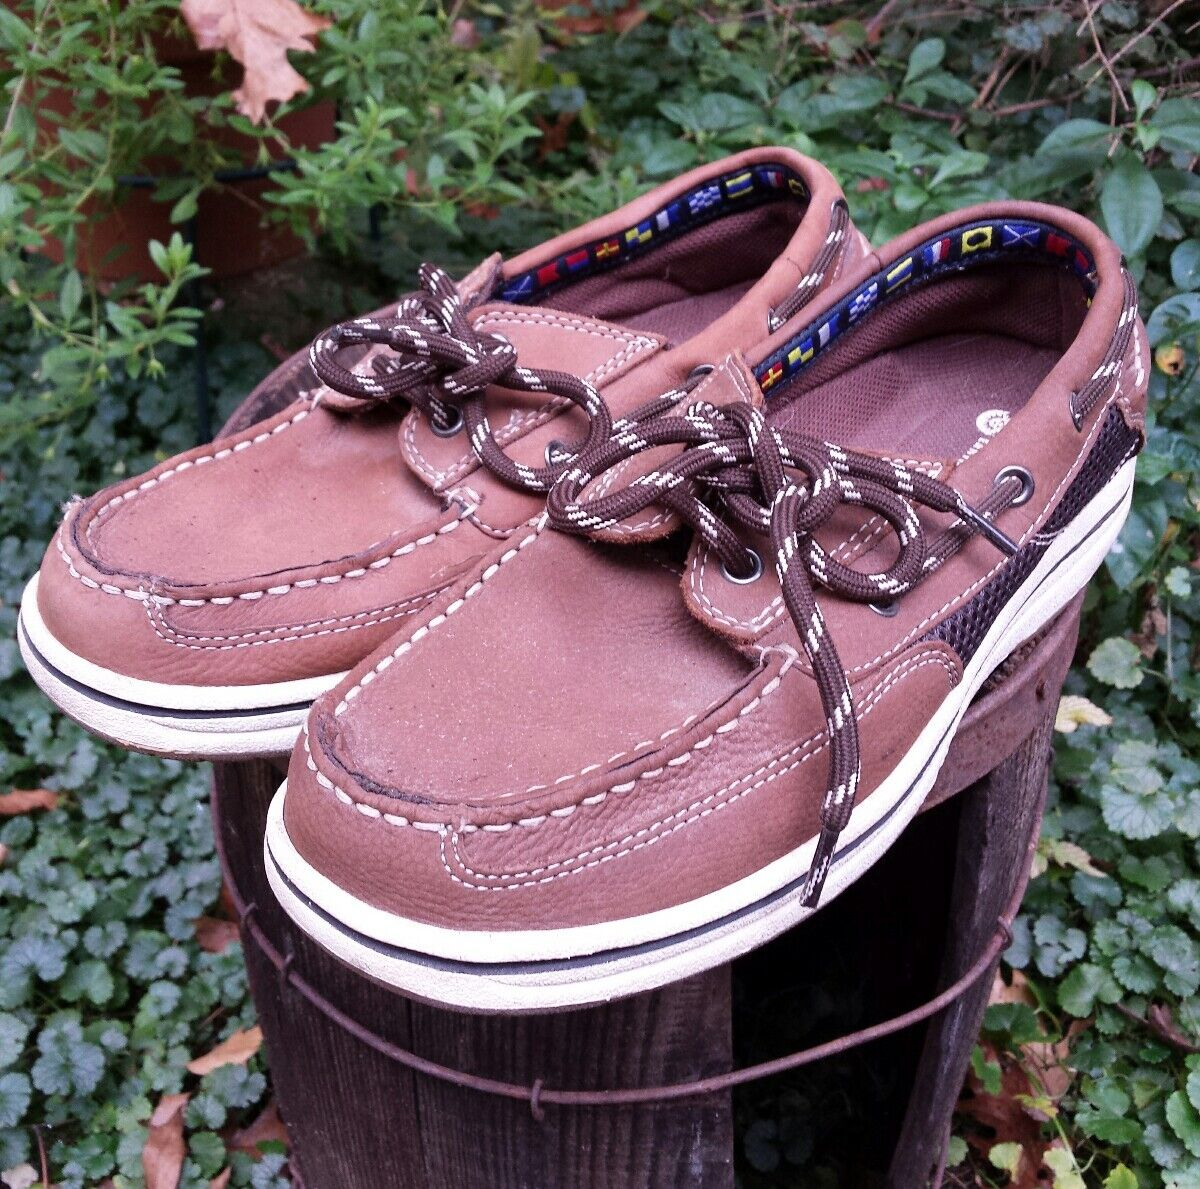 Earth Shoe  Schooner Mens 8 1/2  Shoe Brown Leather Boat Deck Shoes Comfort Driving c4be43